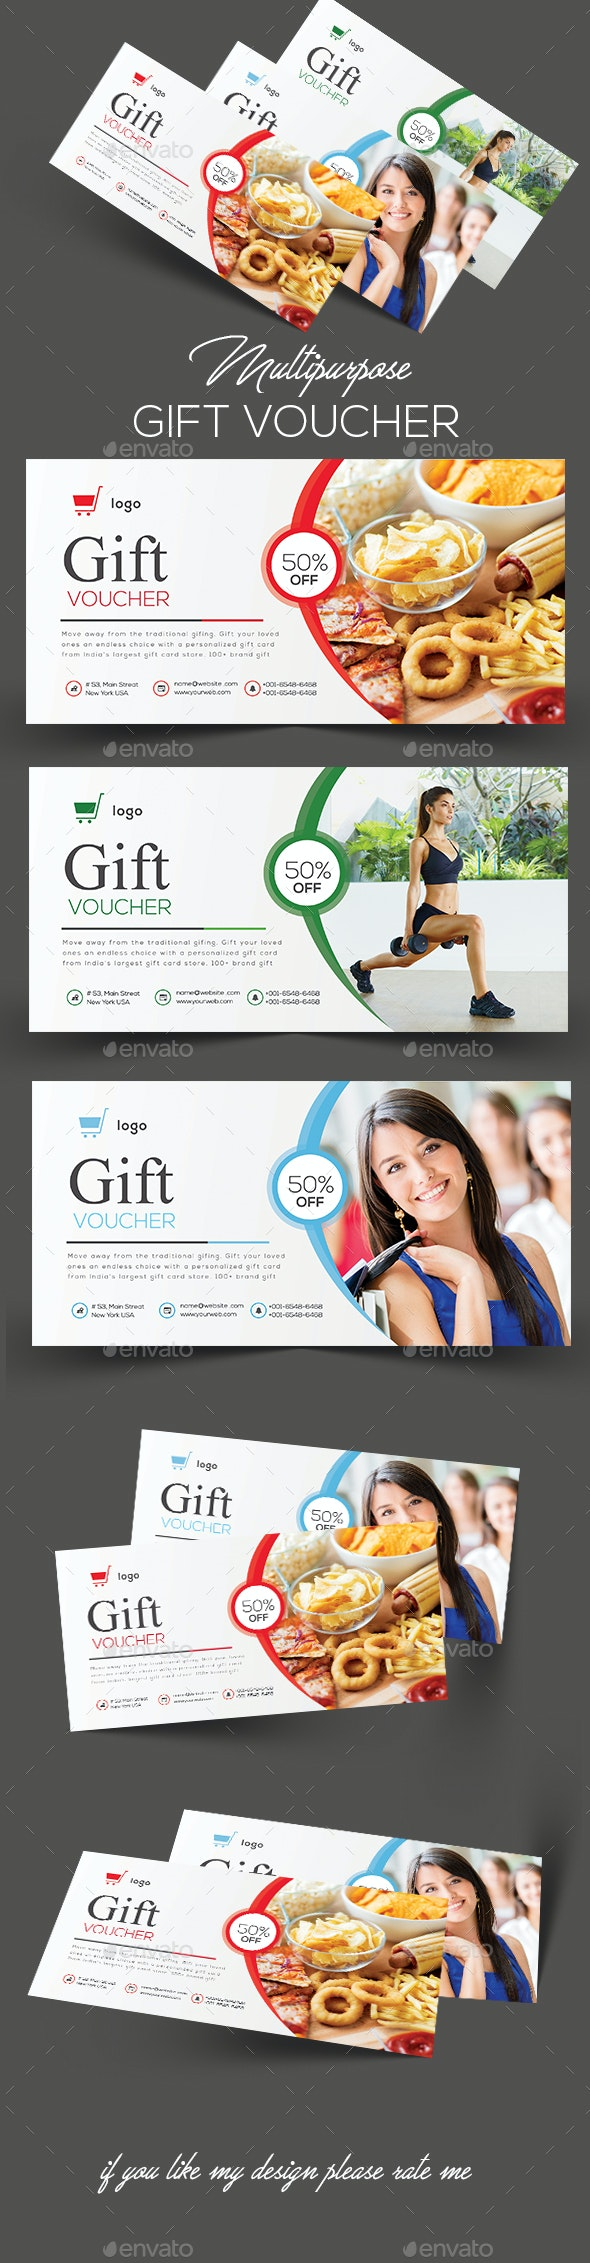 Gift Vouchers Template - Greeting Cards Cards & Invites